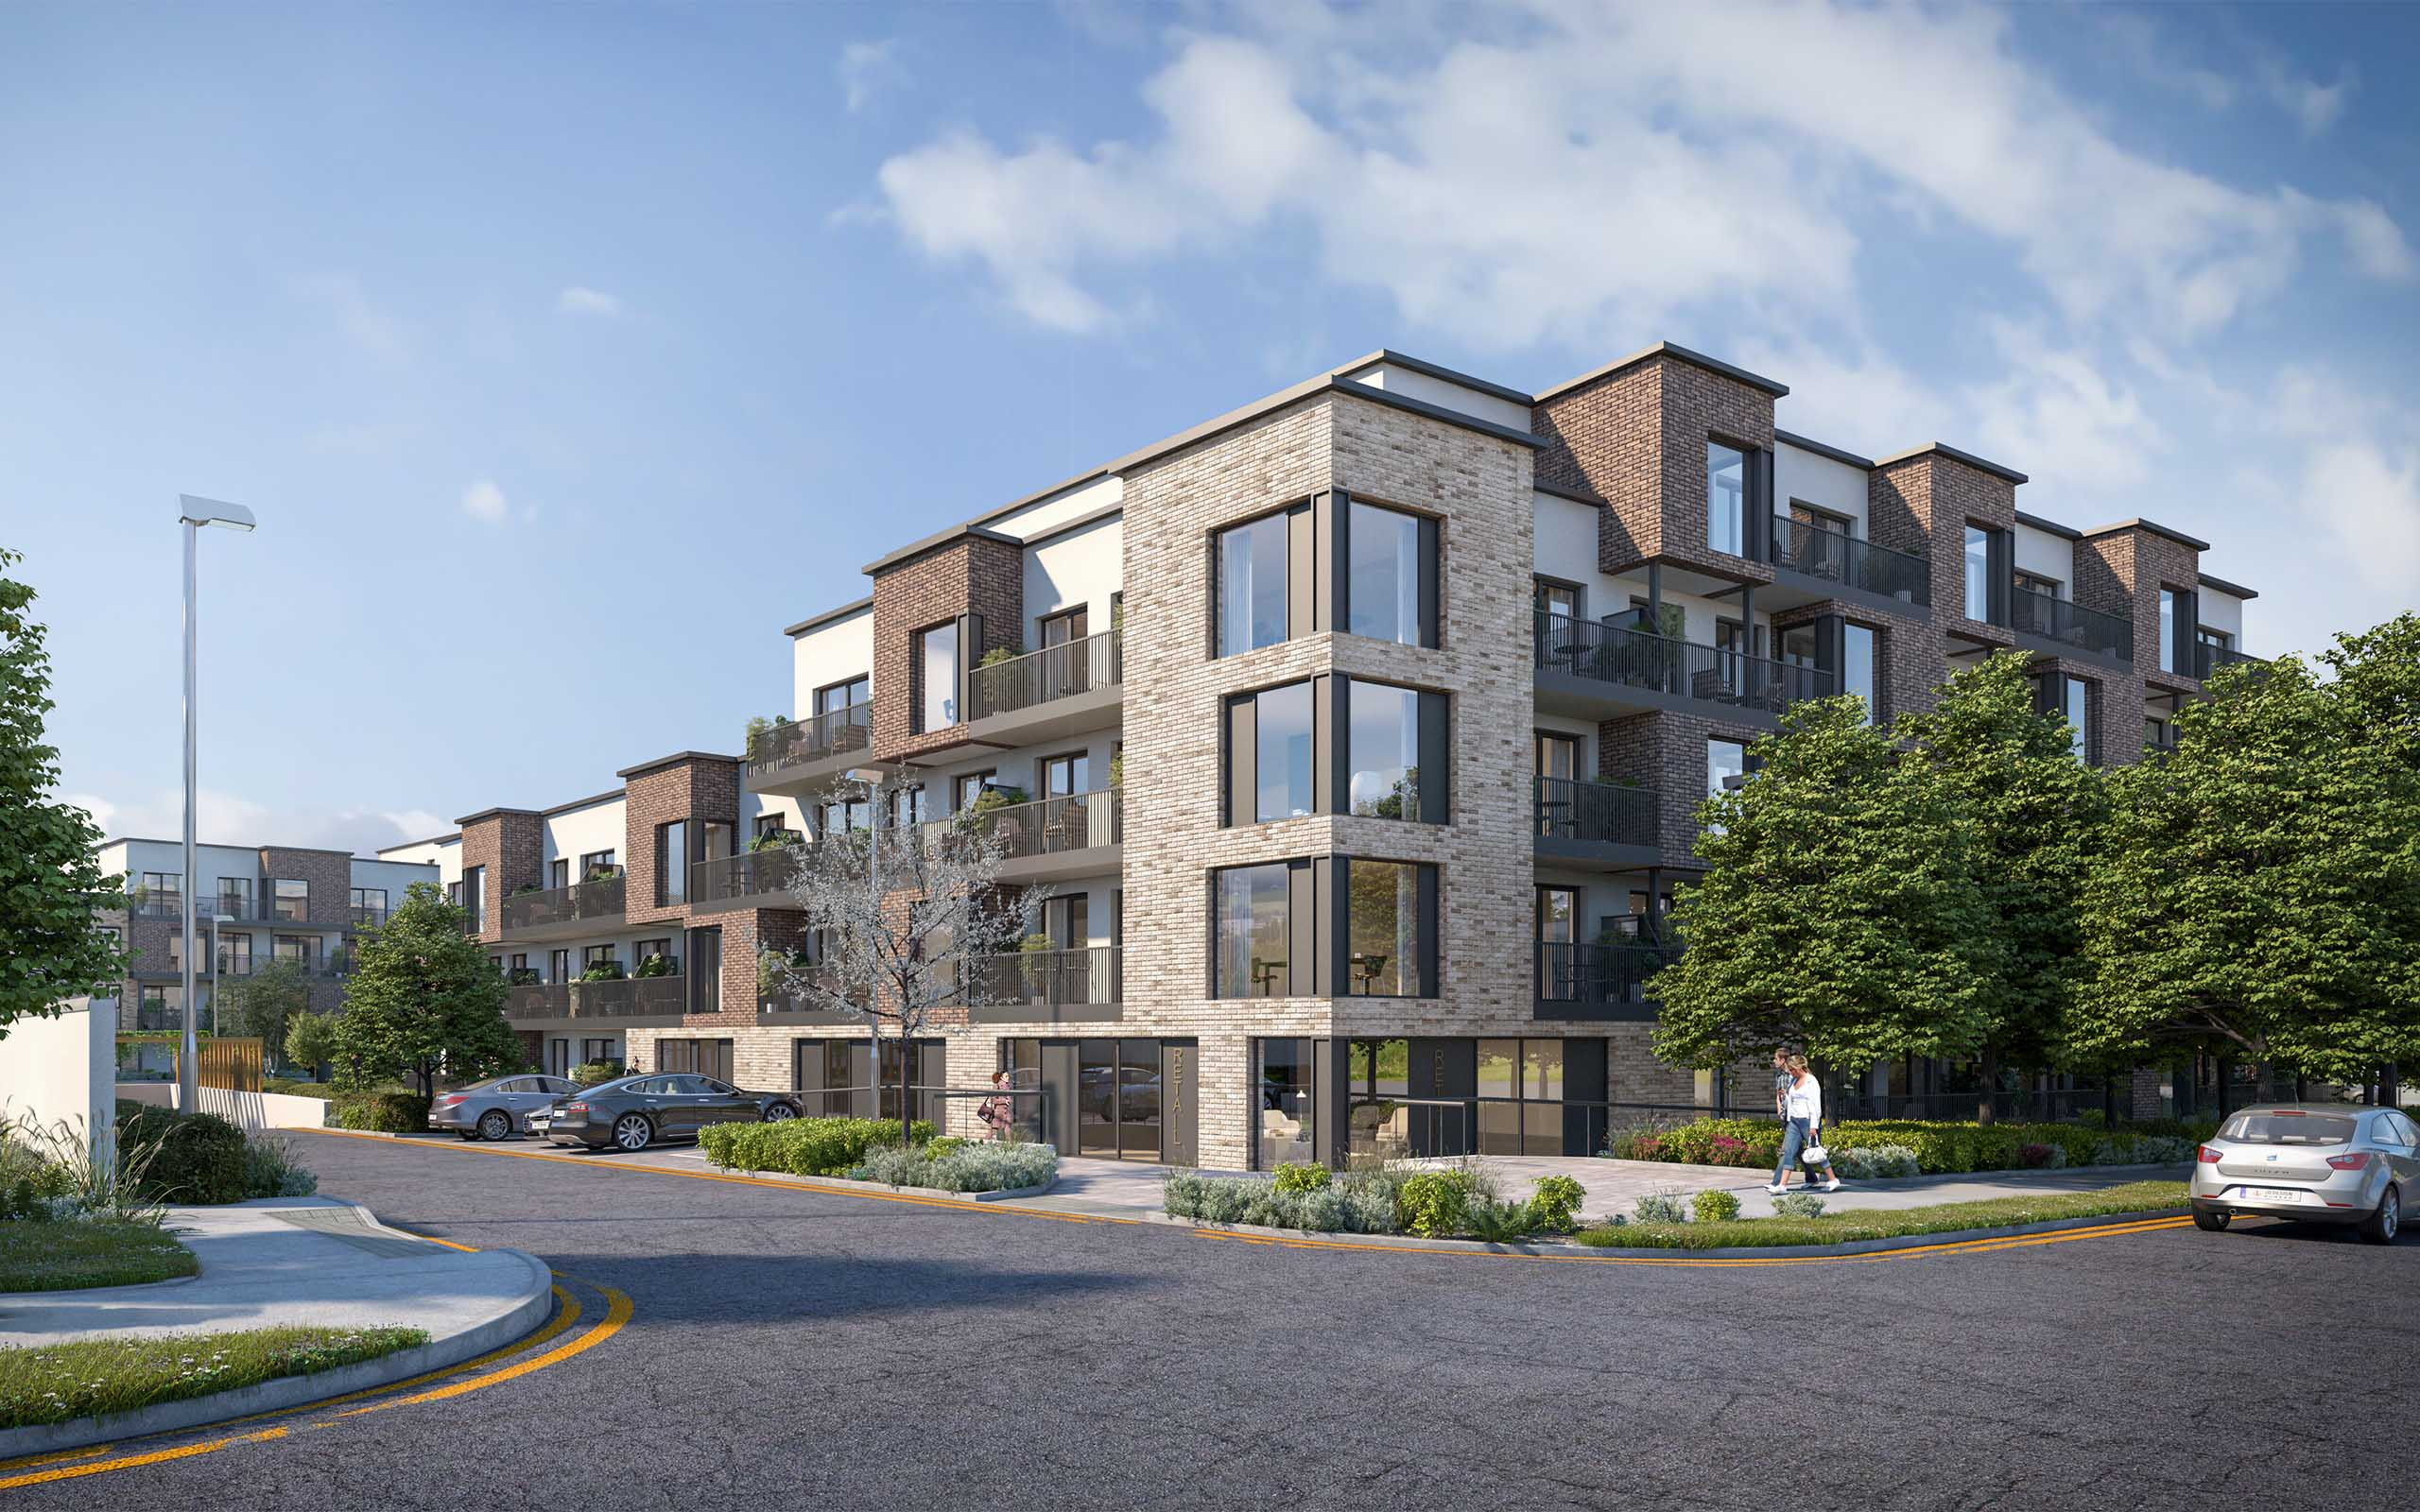 Architectural CGI of 'The Gallery': 144 apartments approved at Turvey Avenue, Donabate.